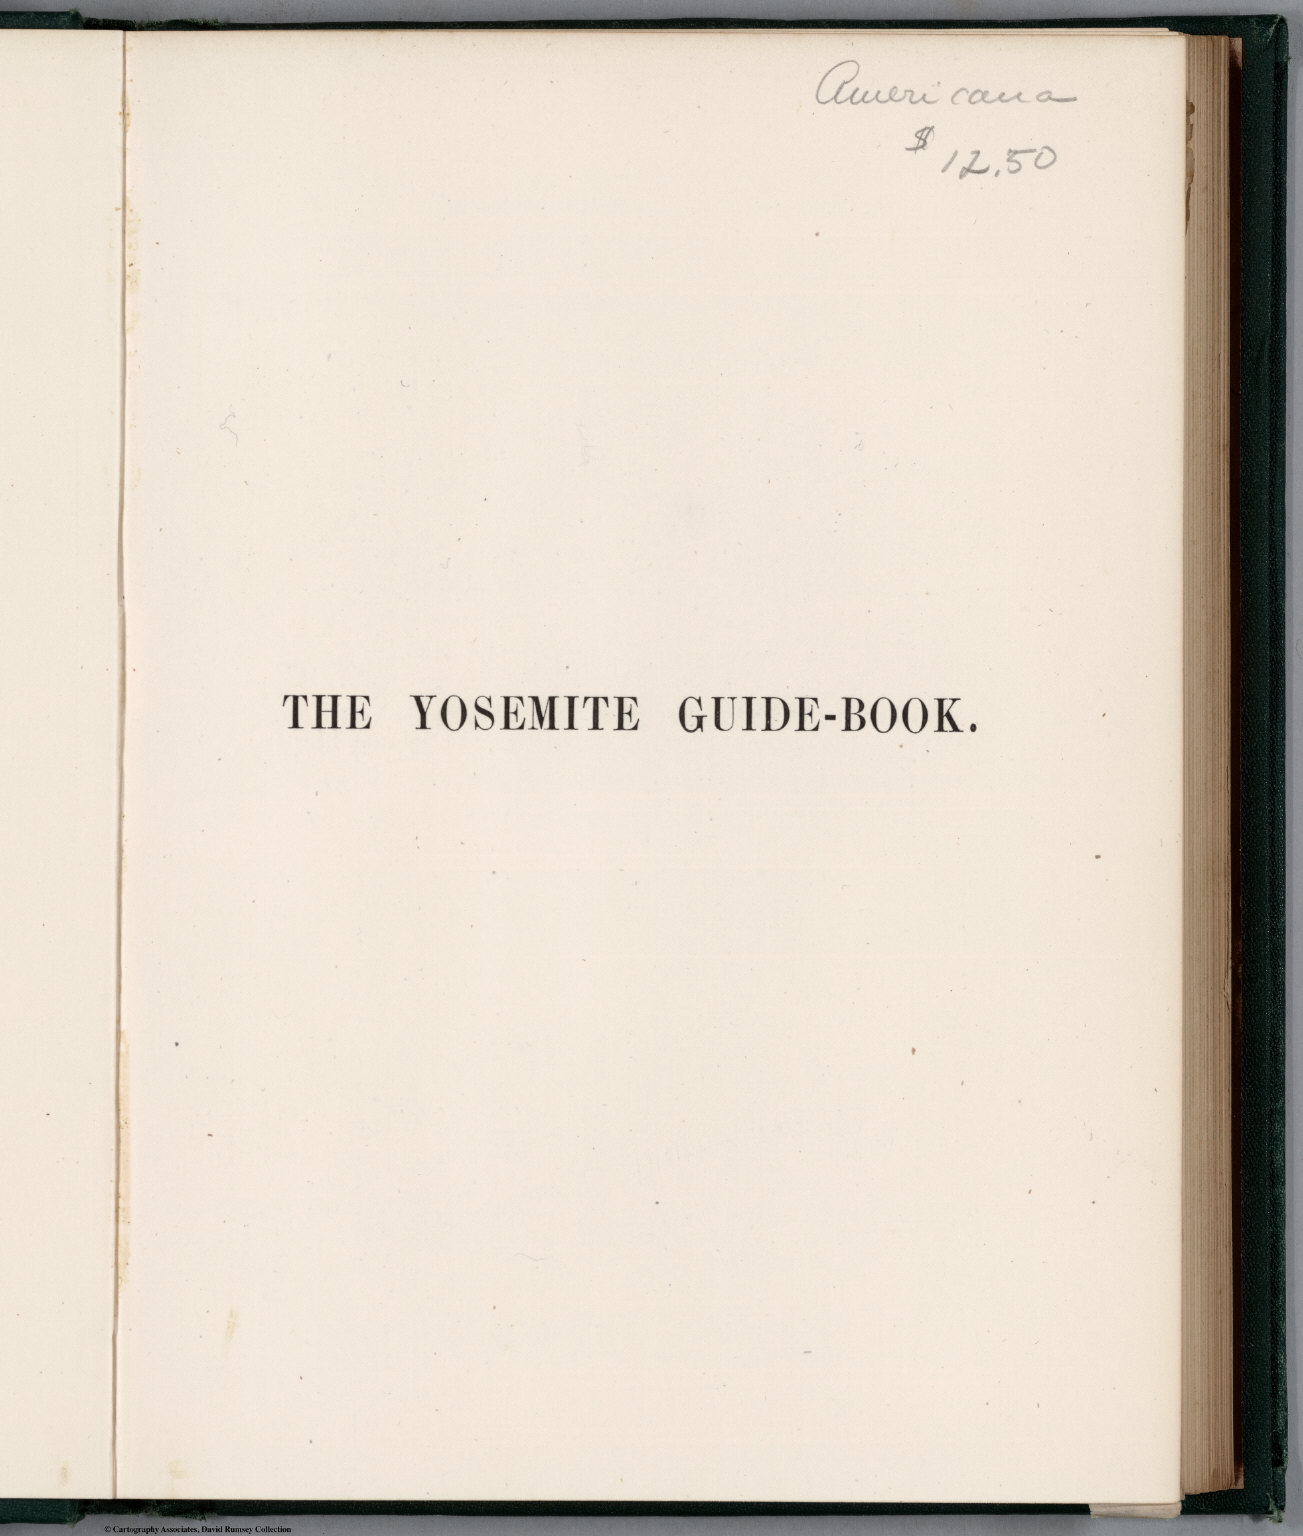 Half Title: The Yosemite Guide-Book.